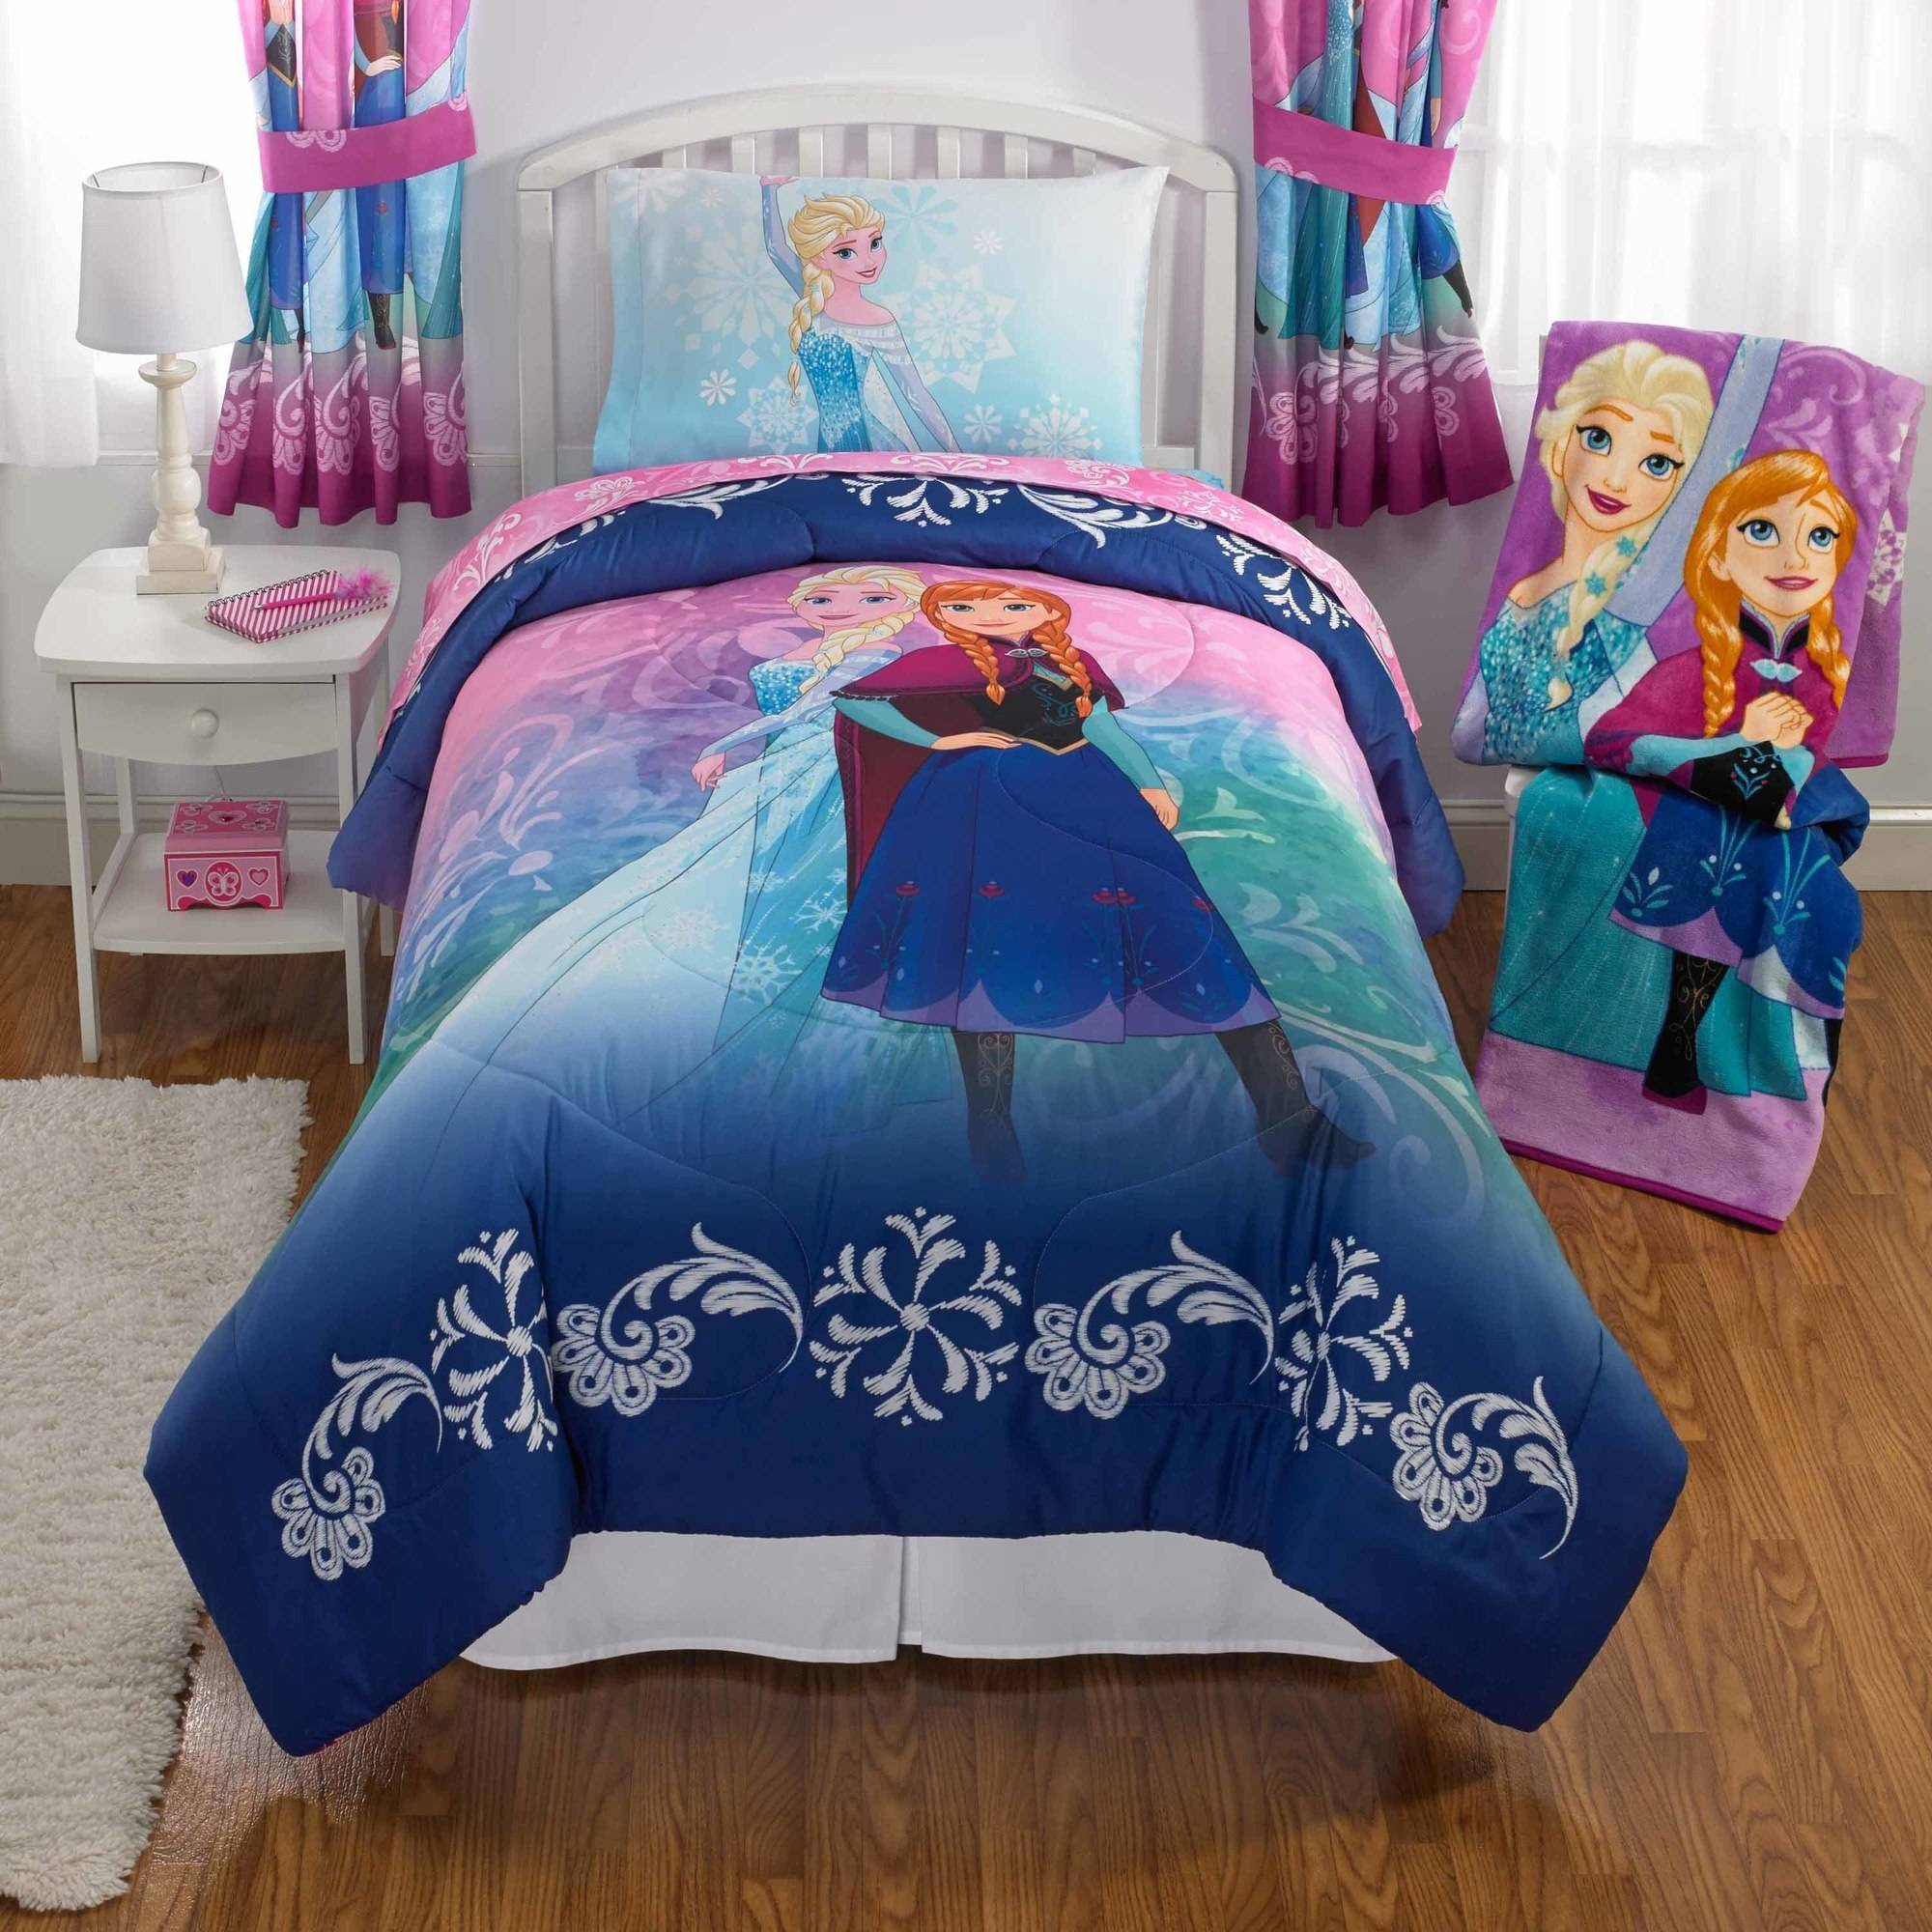 Disney's Frozen Nordic Frost Kid's Bedding Bed in Bag Twin Bedding Set by Franco